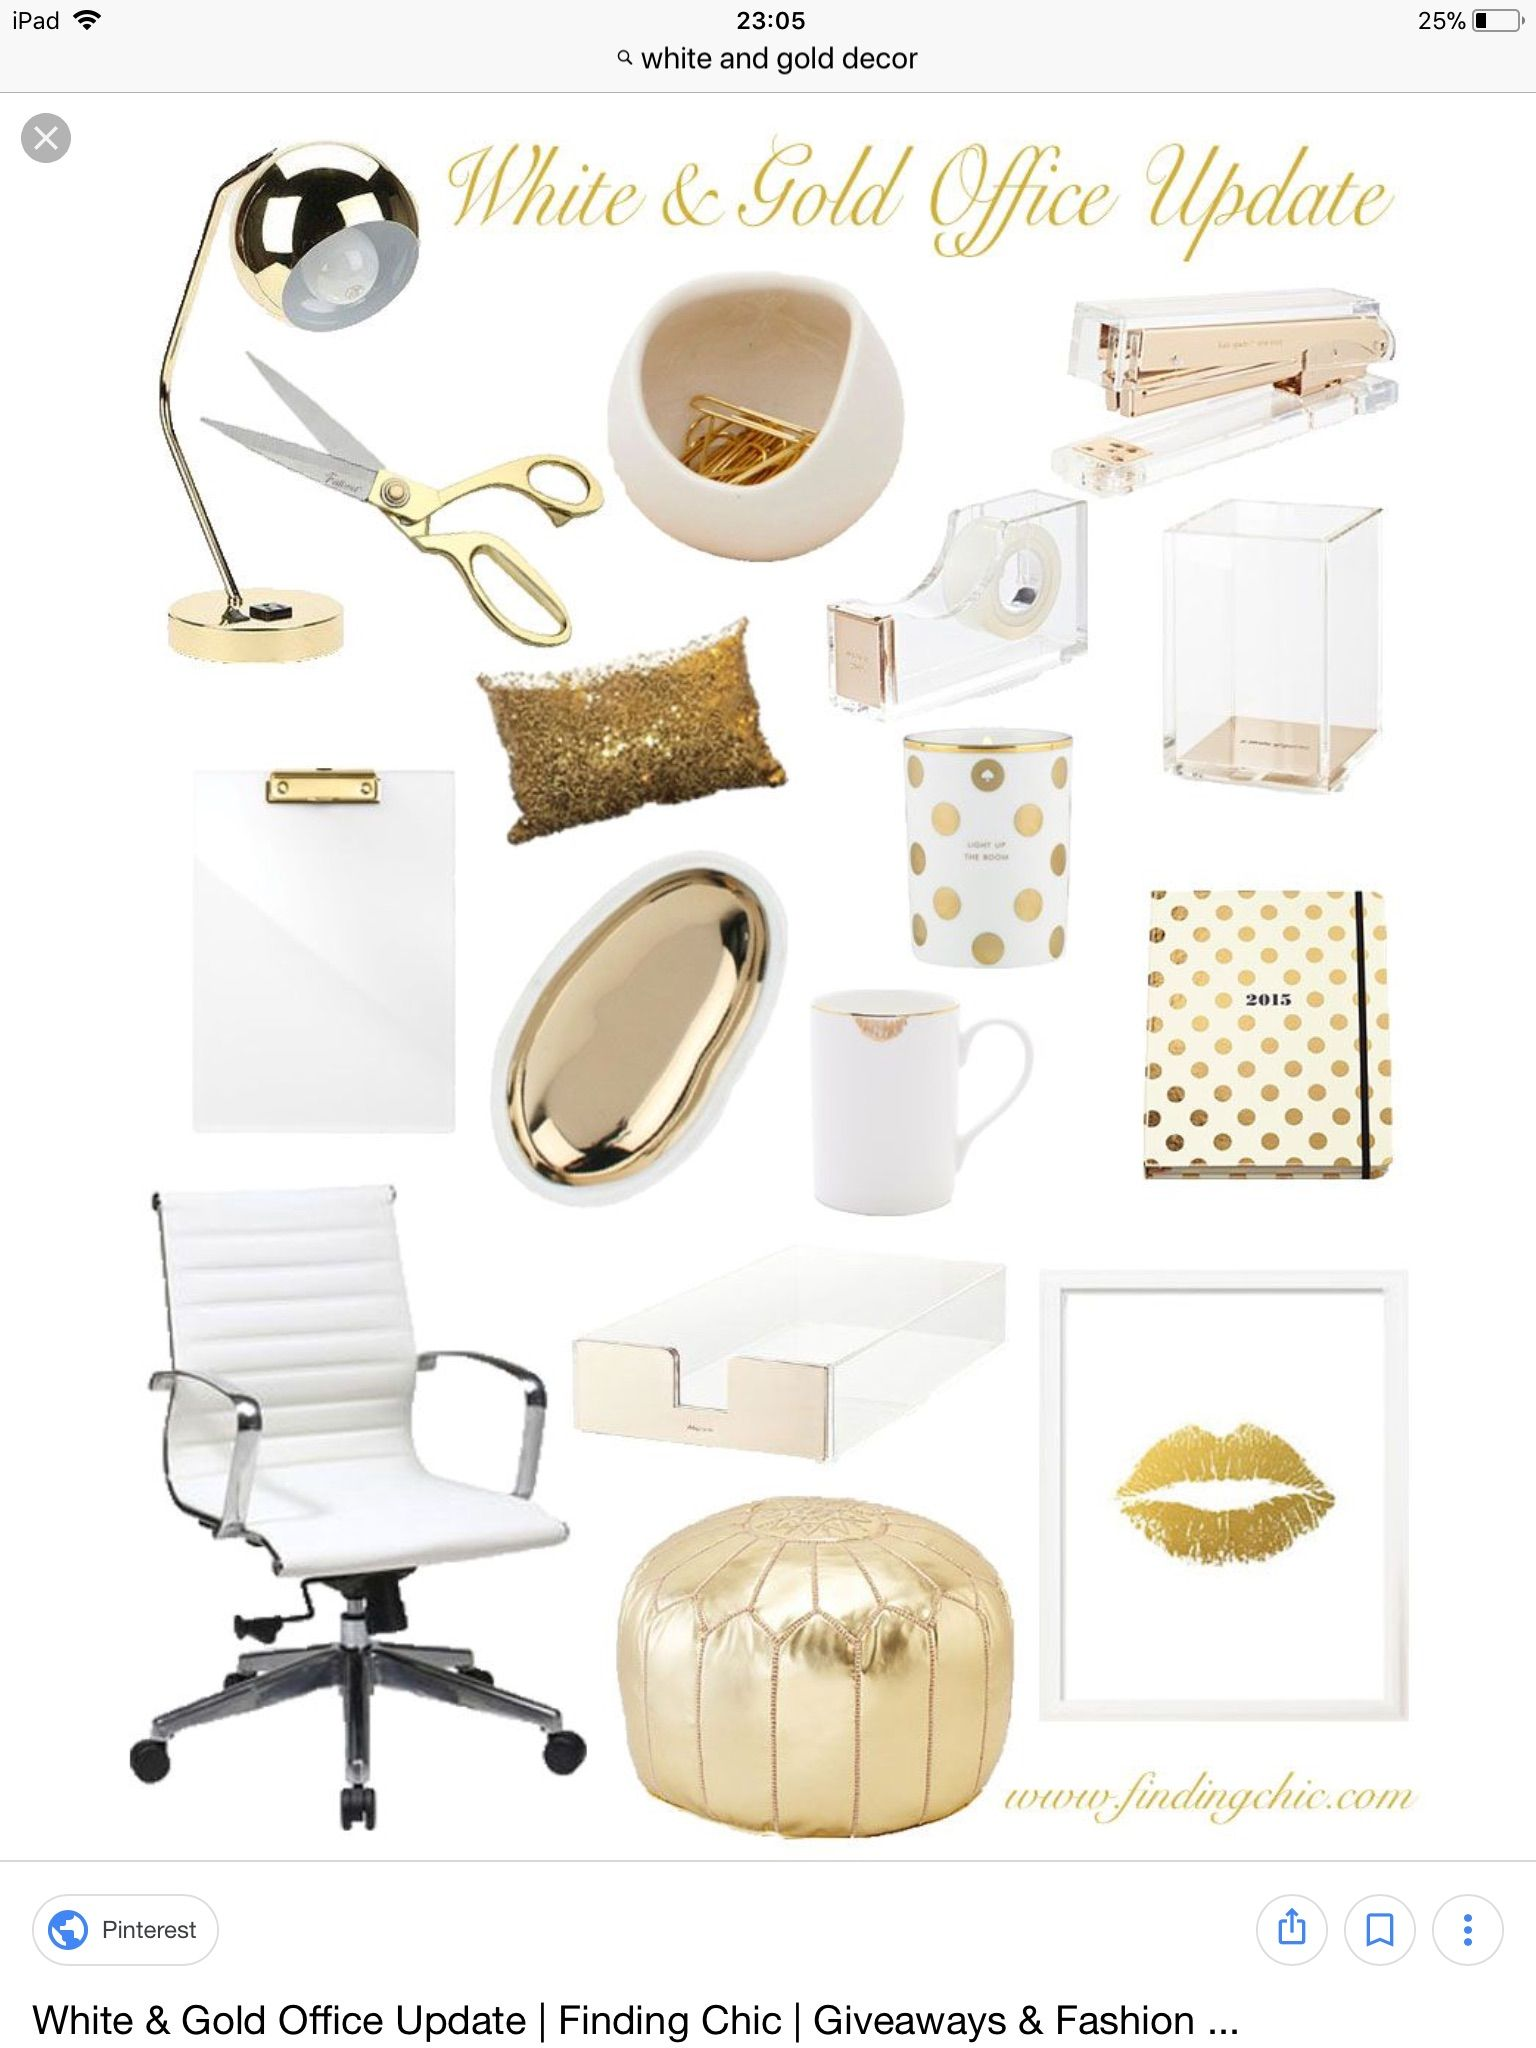 Pin By Angela Caban On Office Gold Office Decor Chic Office Decor White Gold Office